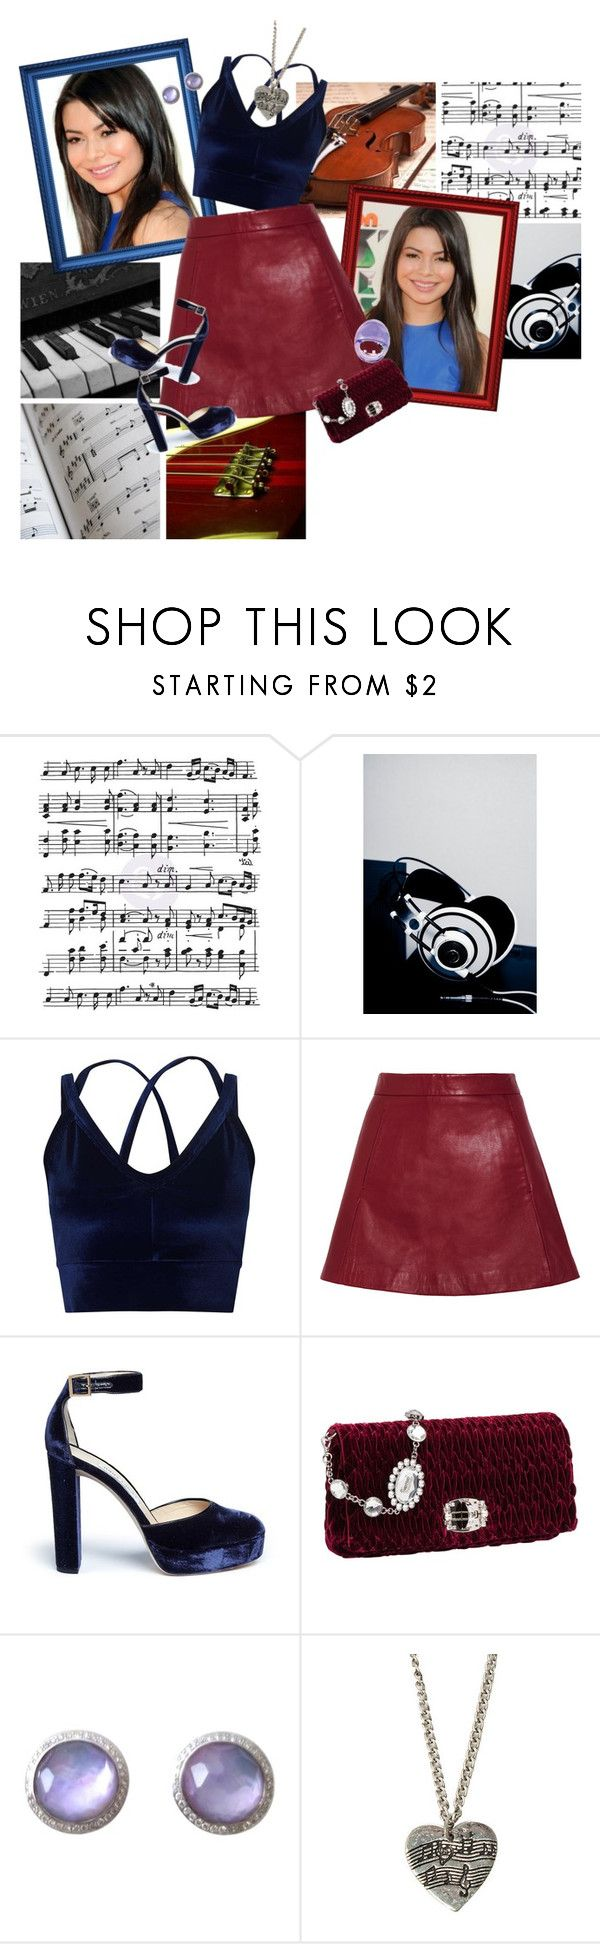 """Musa"" by srta-sr ❤ liked on Polyvore featuring Music Notes, Nickelodeon, Miss Selfridge, Ganni, Jimmy Choo, Miu Miu, Ippolita and Lalique"